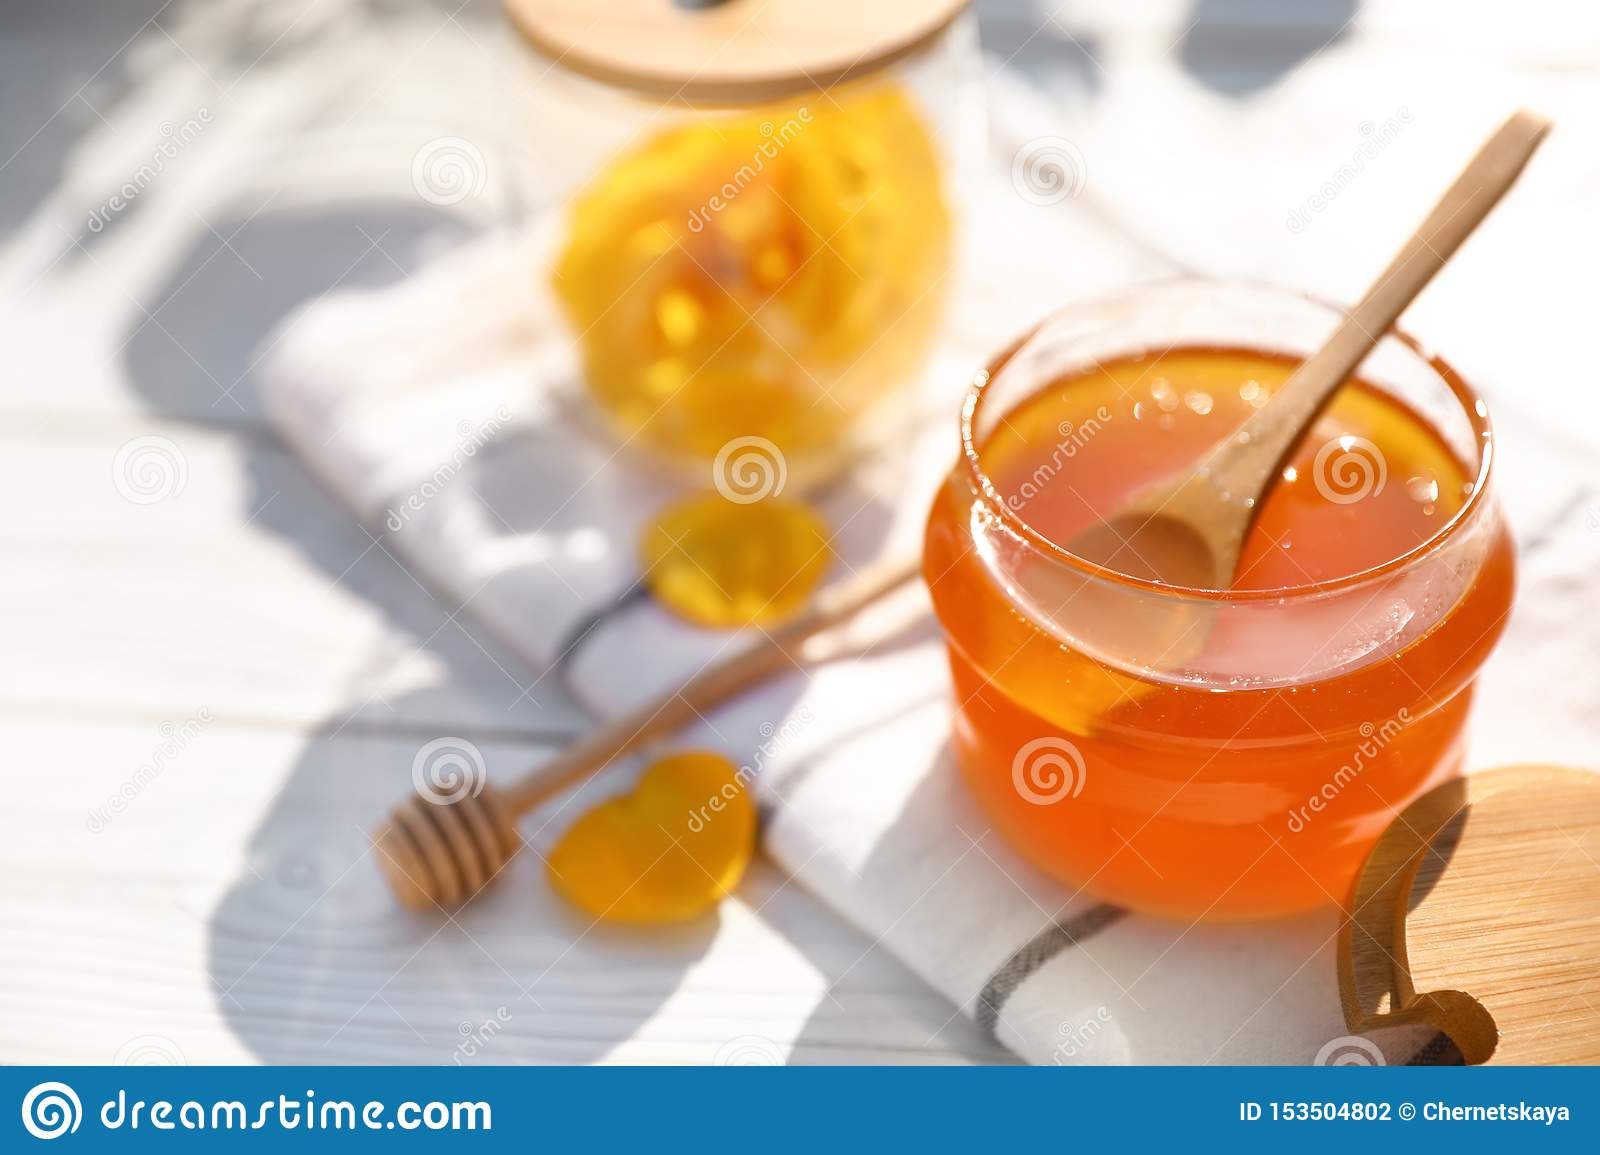 Composition with glass jar of fresh rose honey on white wooden table